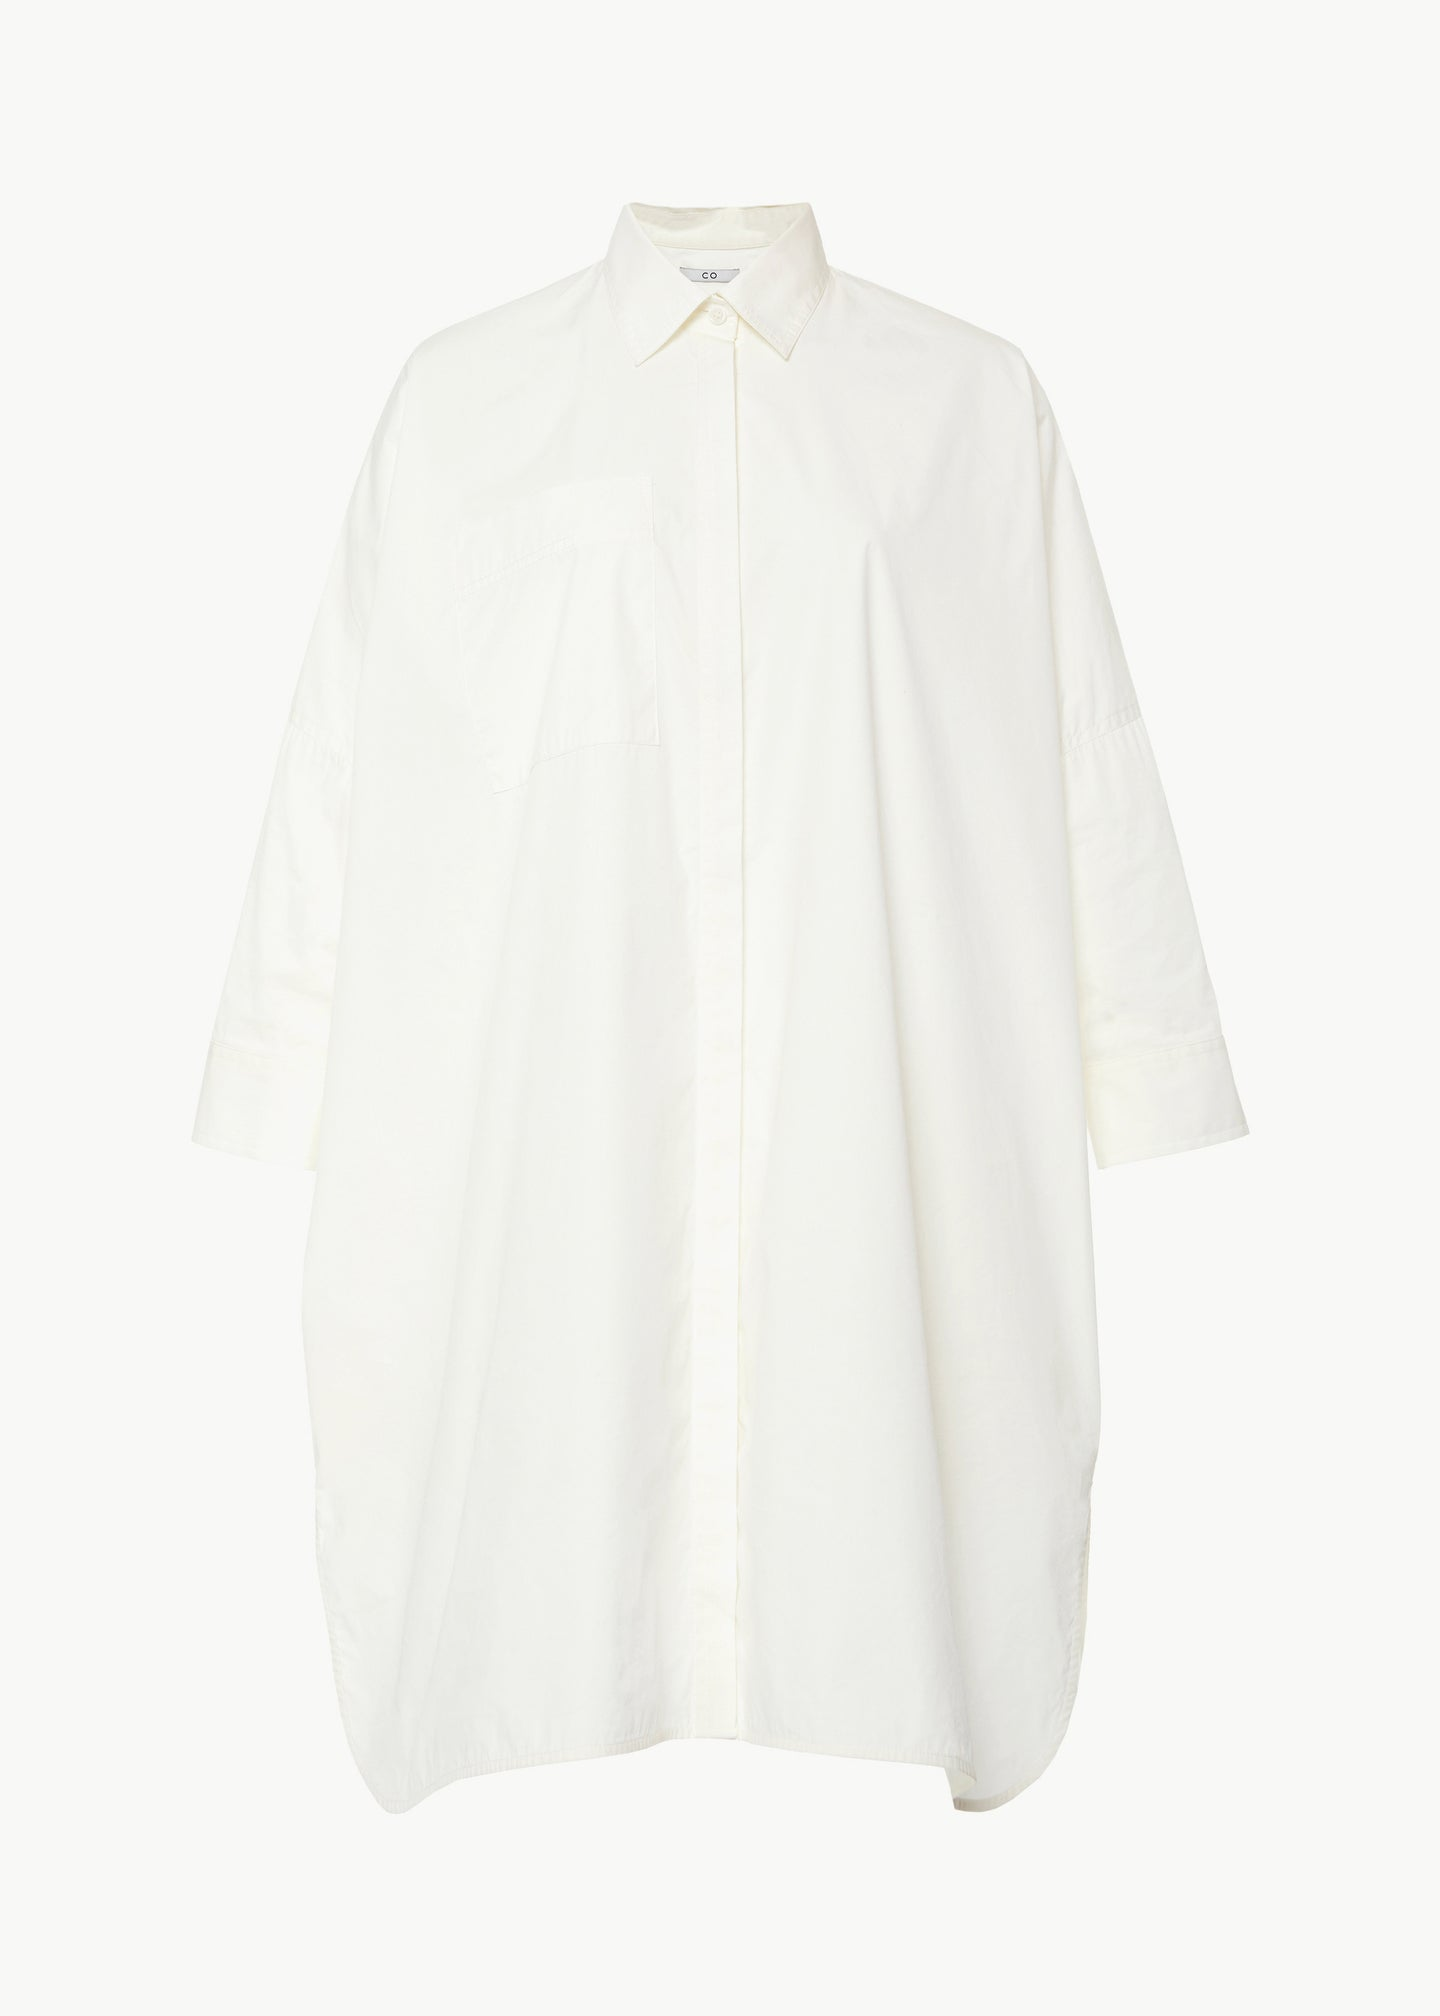 Button Down Shirt in Cotton - White - CO